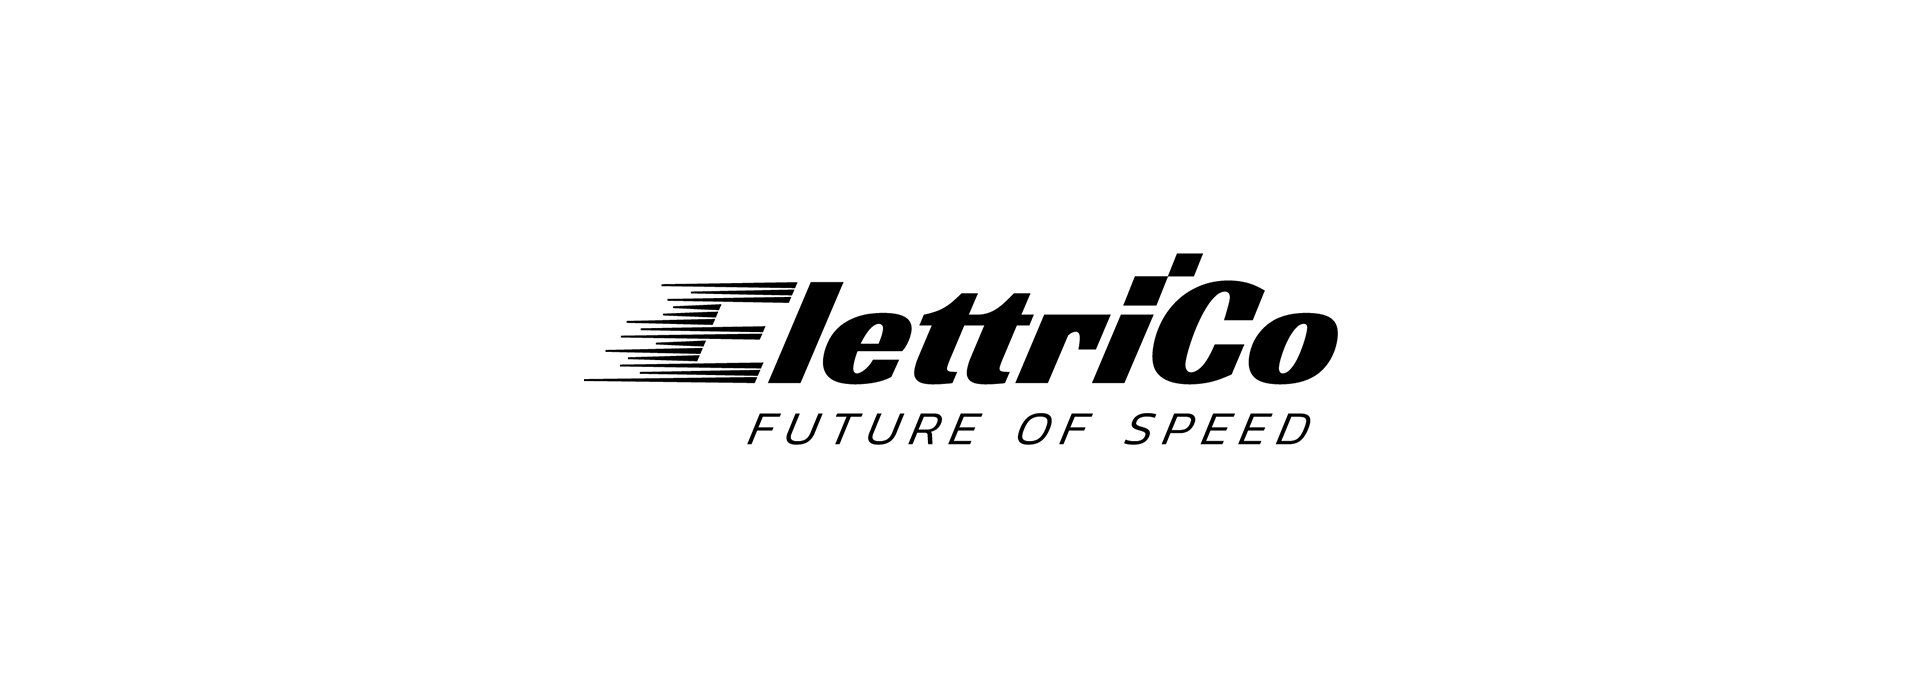 elettrico future of speed black